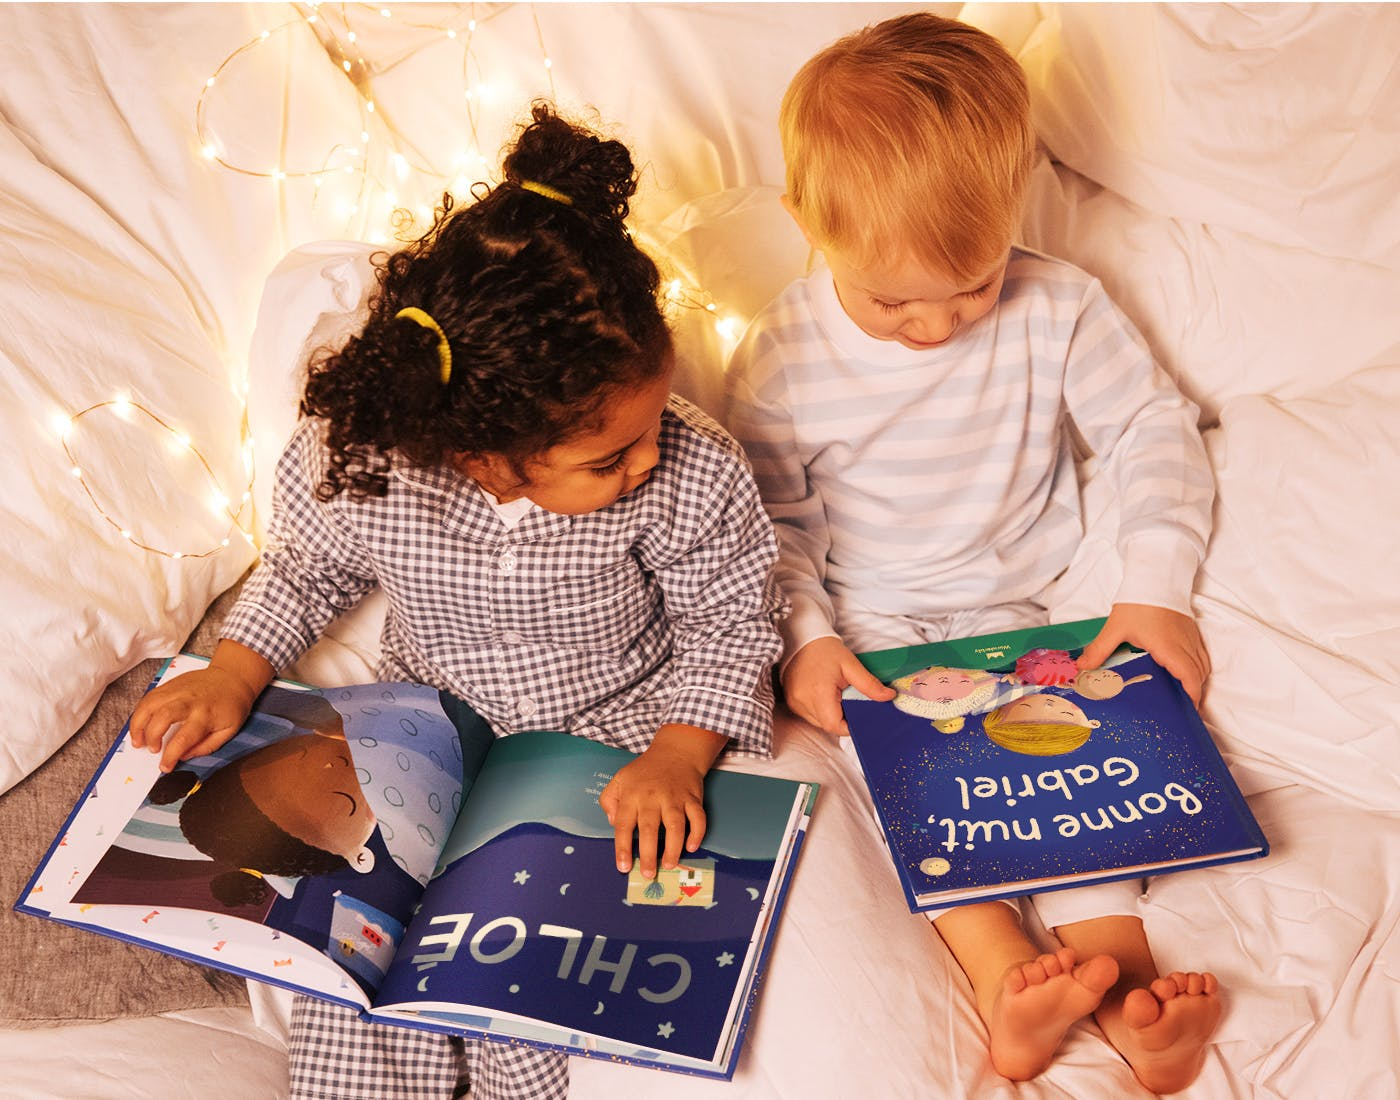 Two children on a bed reading Bedtime For You